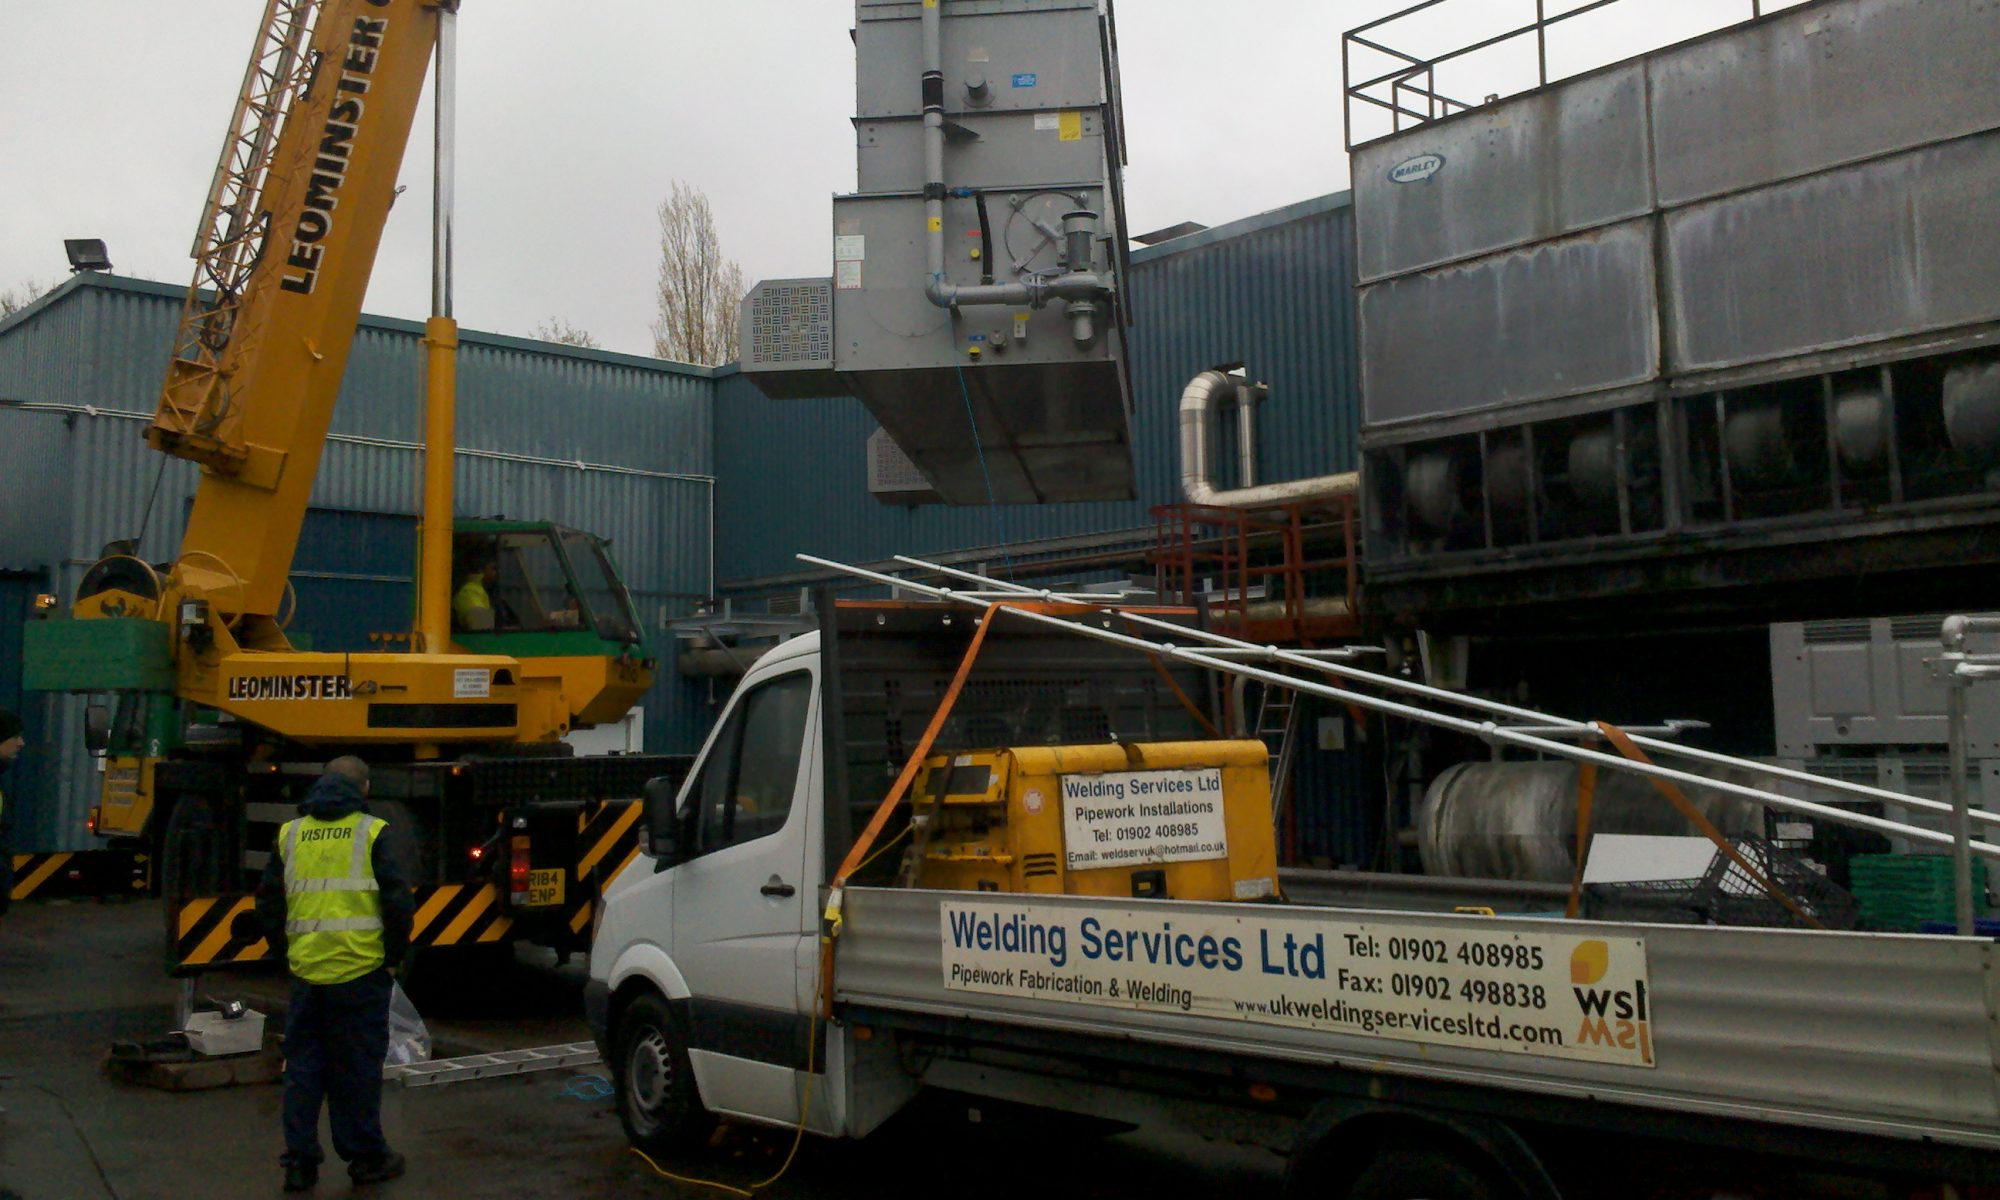 Welding Services Limited